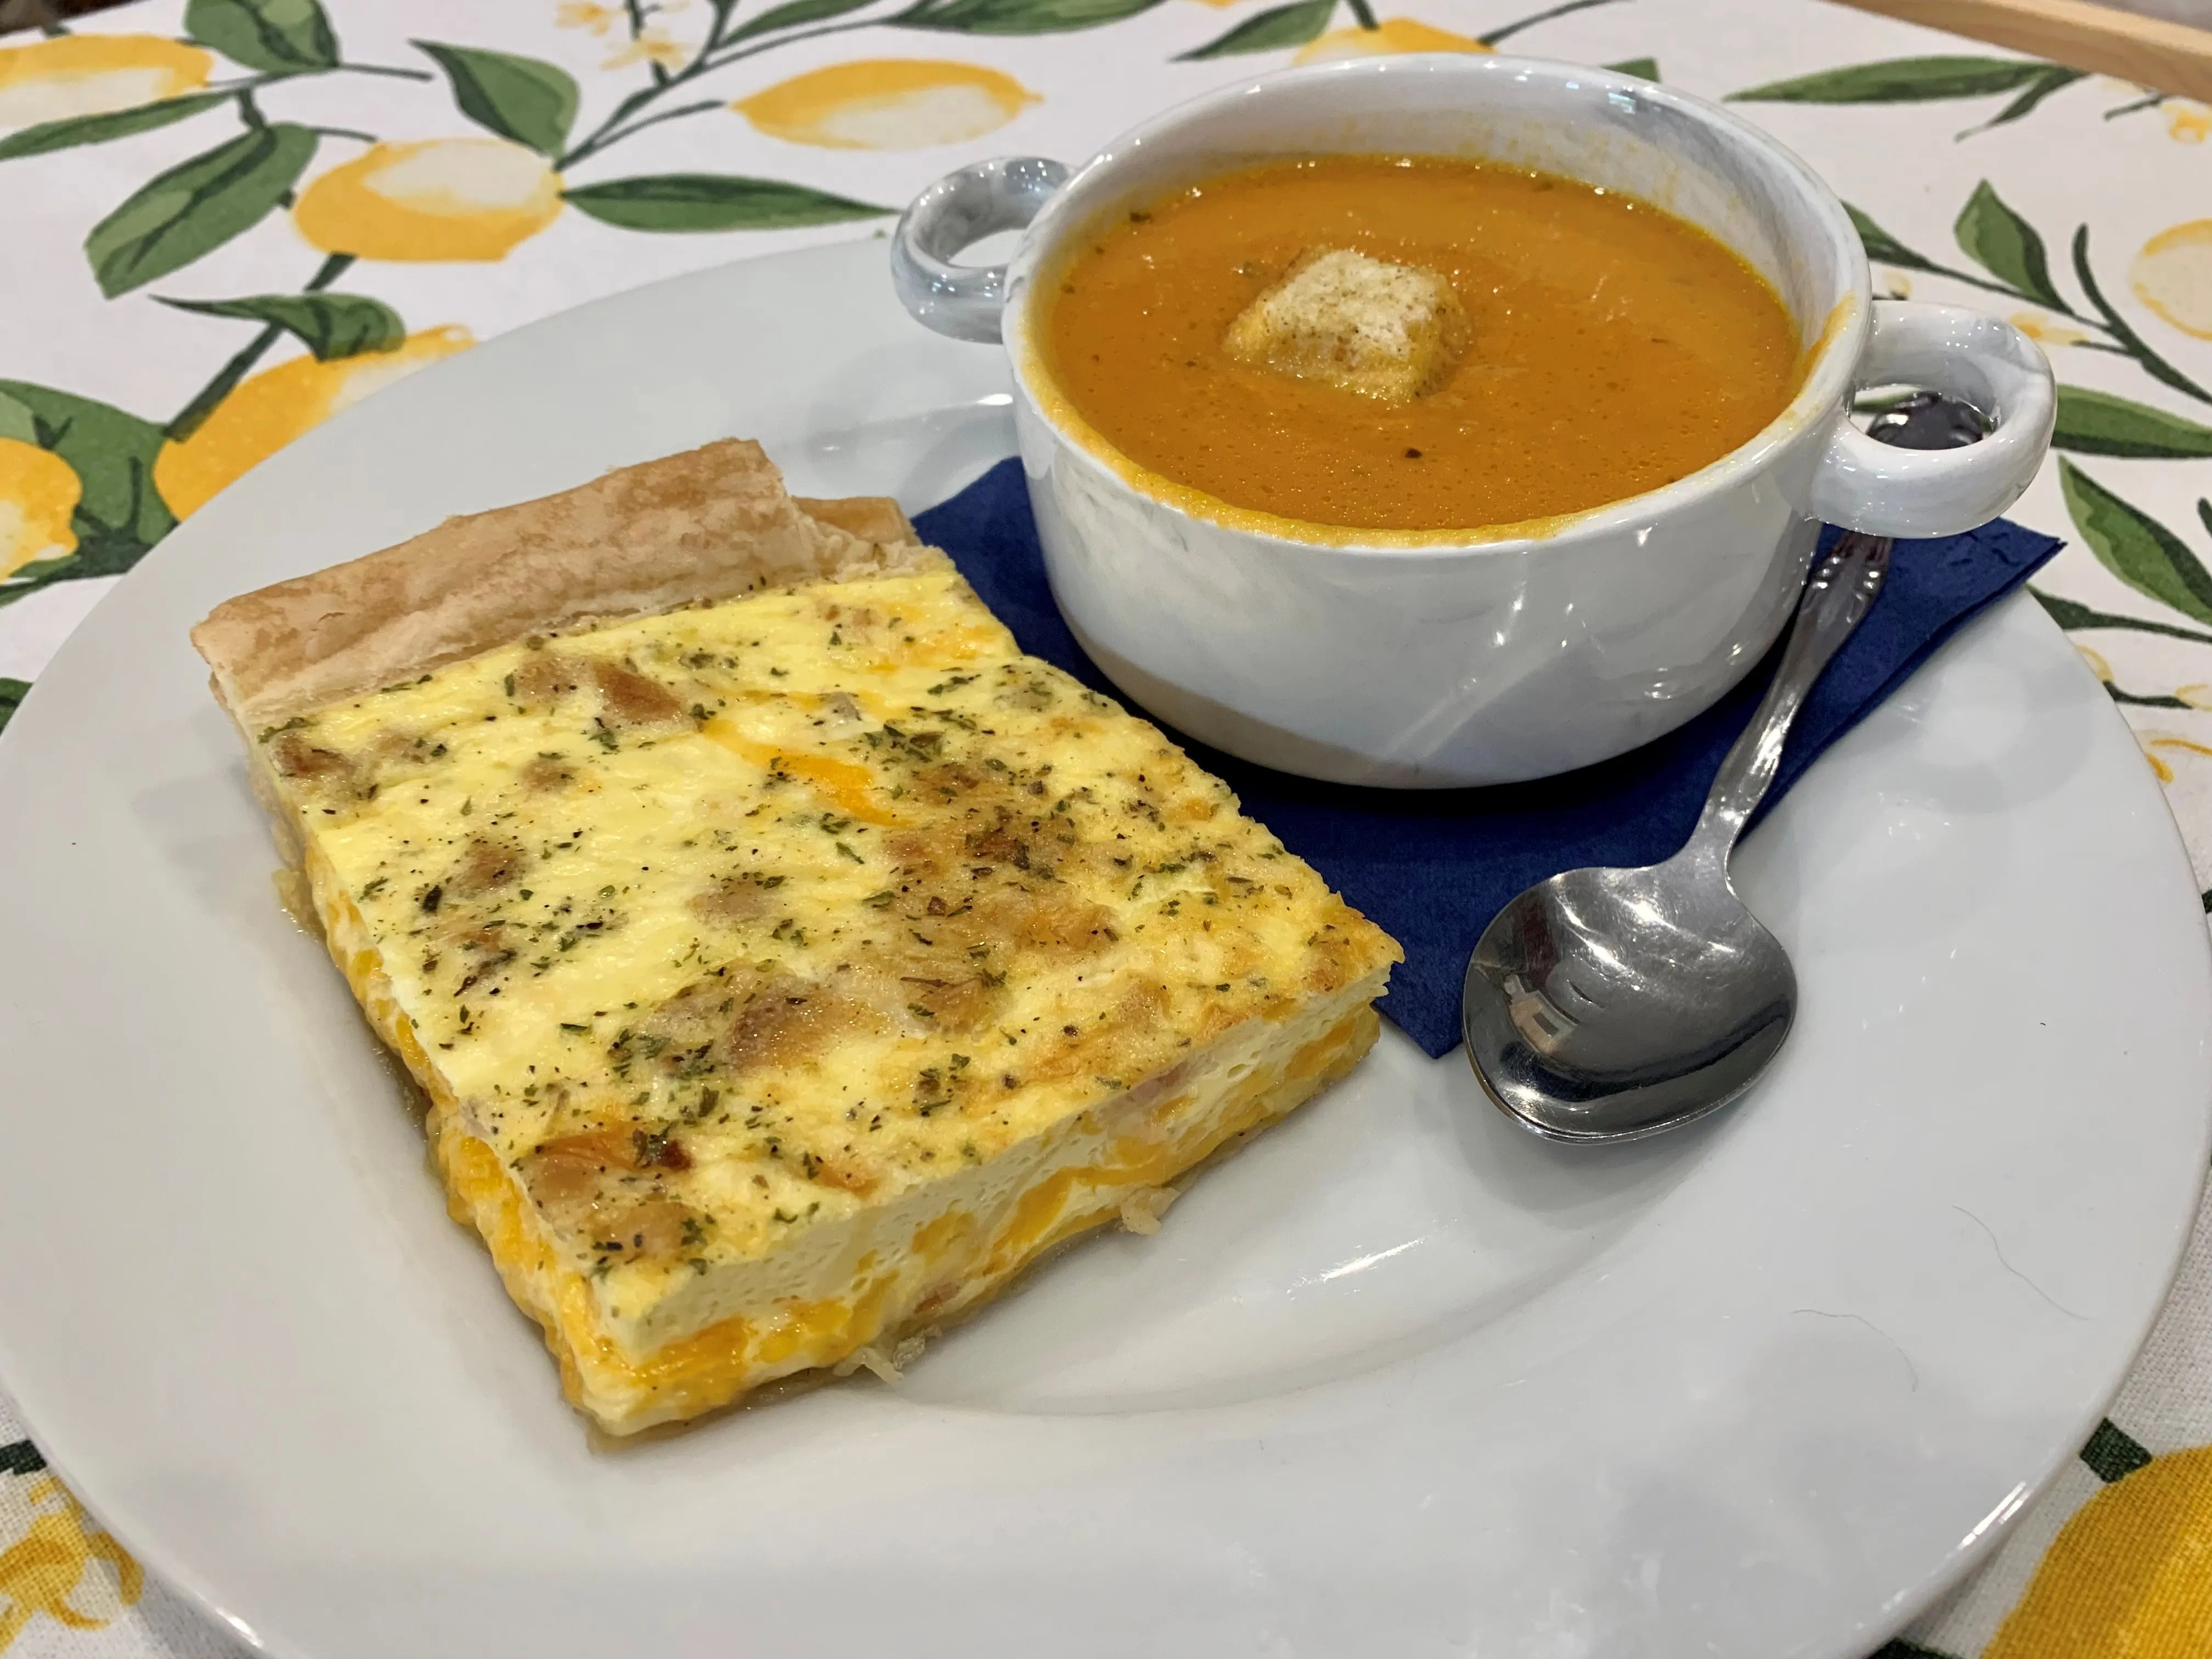 On the menu at The Curious Kitchen, 327 E. State St., Murfreesboro: Quiche and carrot tarragon soup.